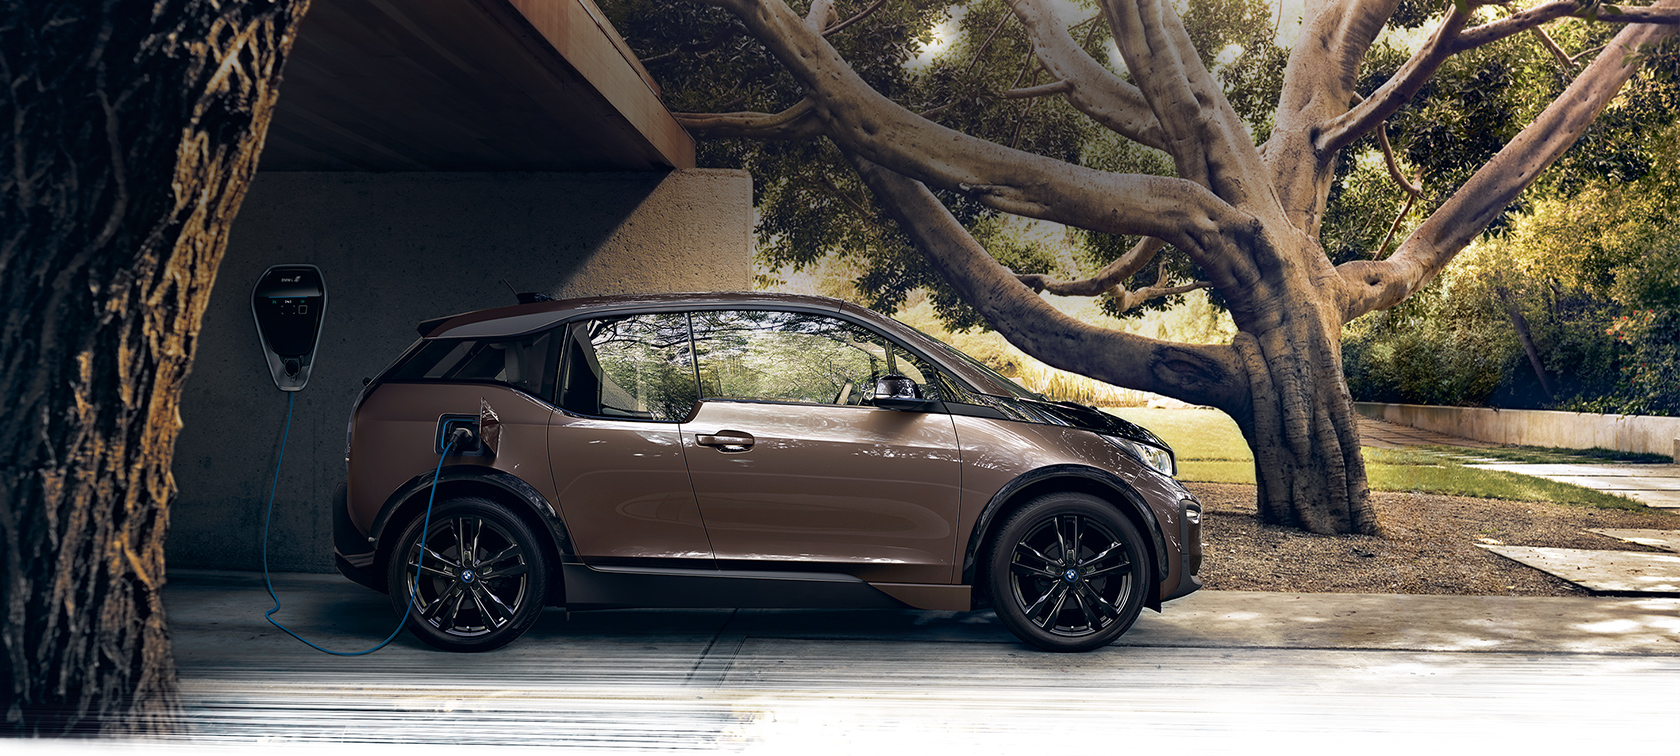 bmw i3 reichweite laden effizienz. Black Bedroom Furniture Sets. Home Design Ideas